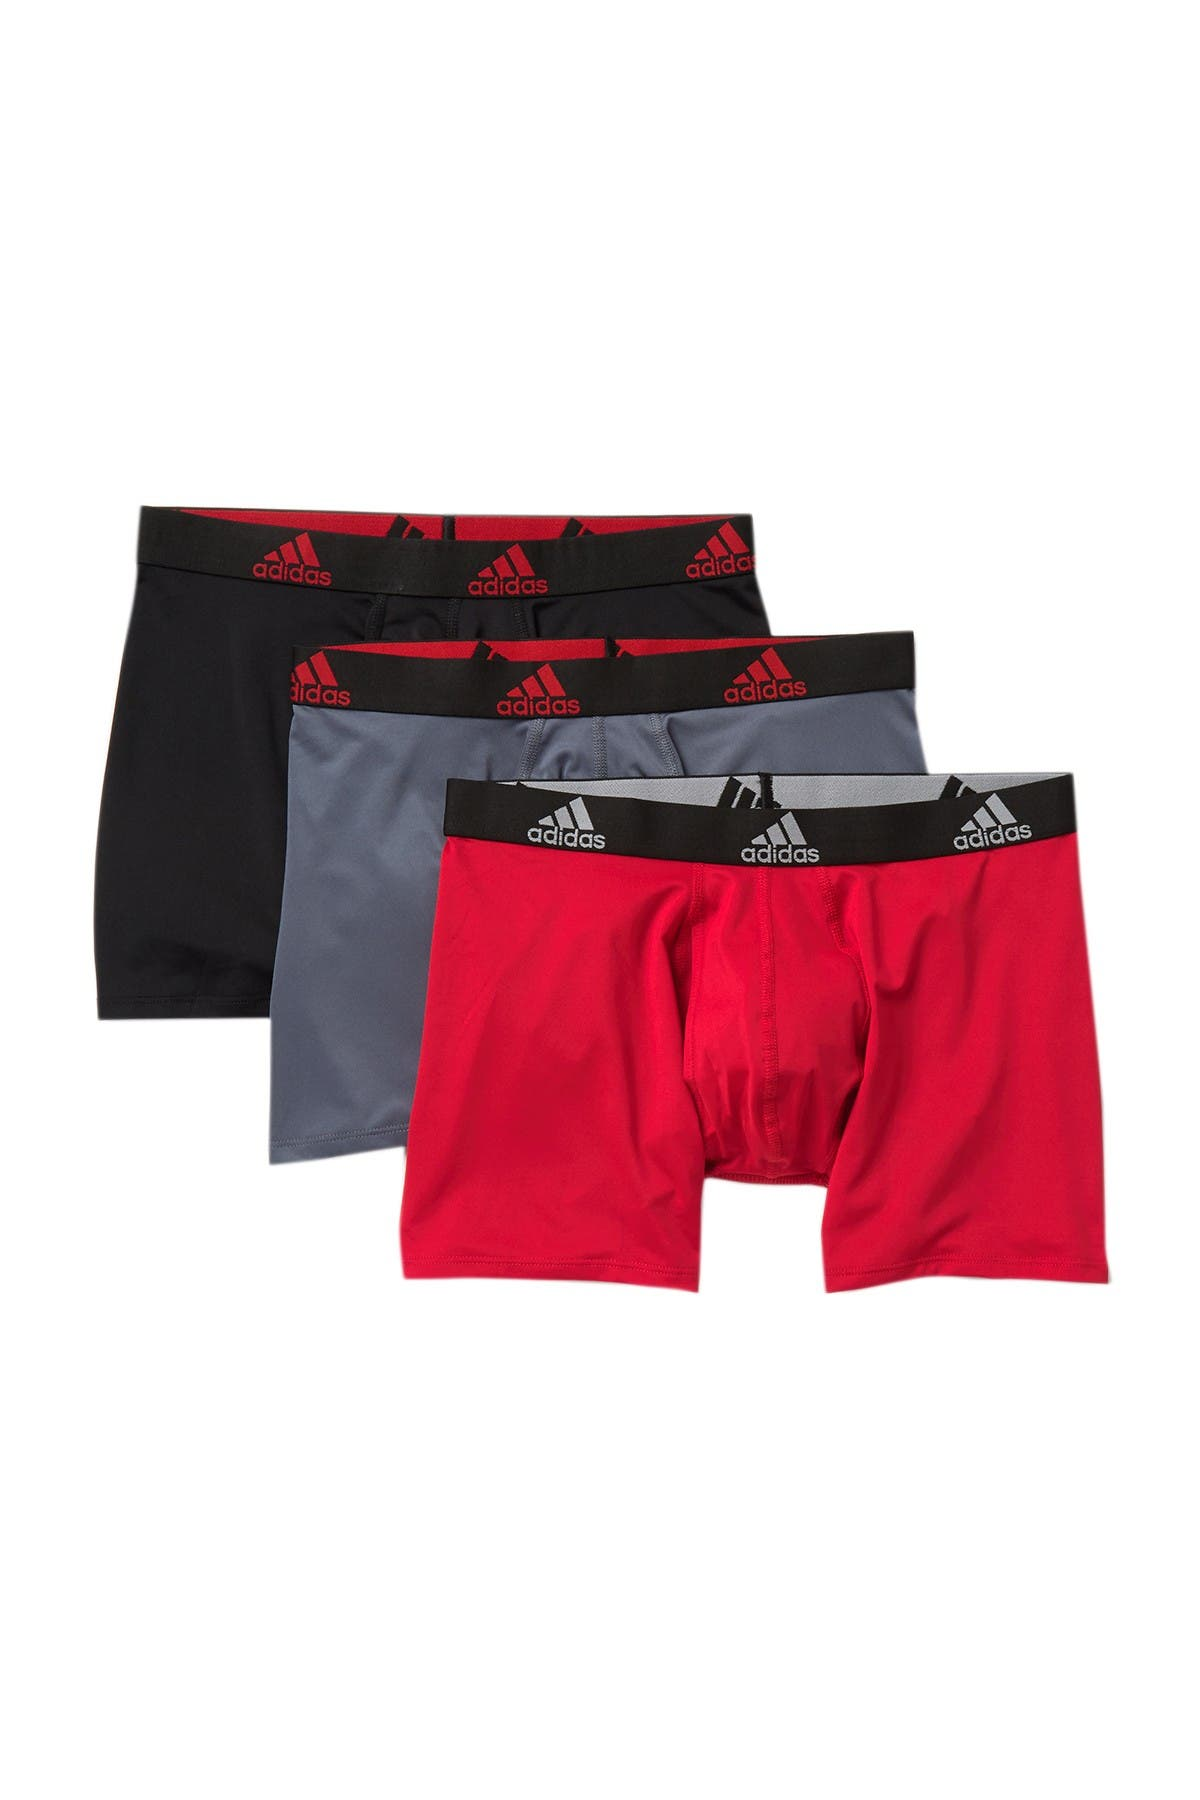 Image of adidas Climalite Boxer Briefs - Pack of 3